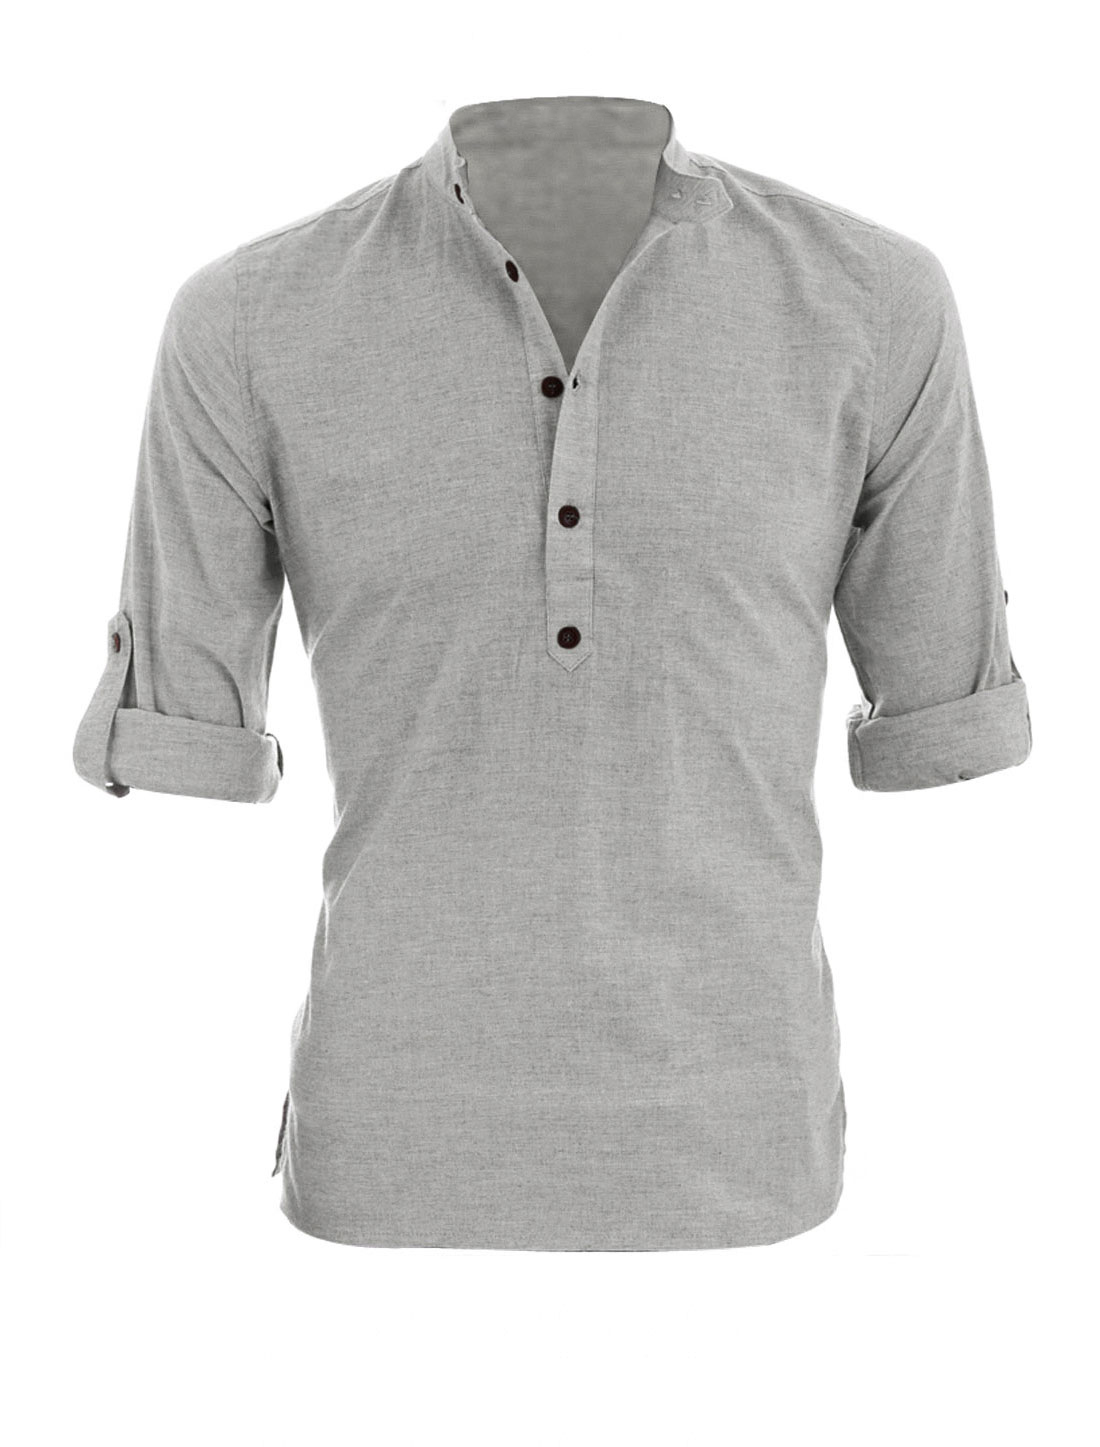 Man Rolled Sleeves Grandad Collar Leisure Henley Shirt Light Gray M